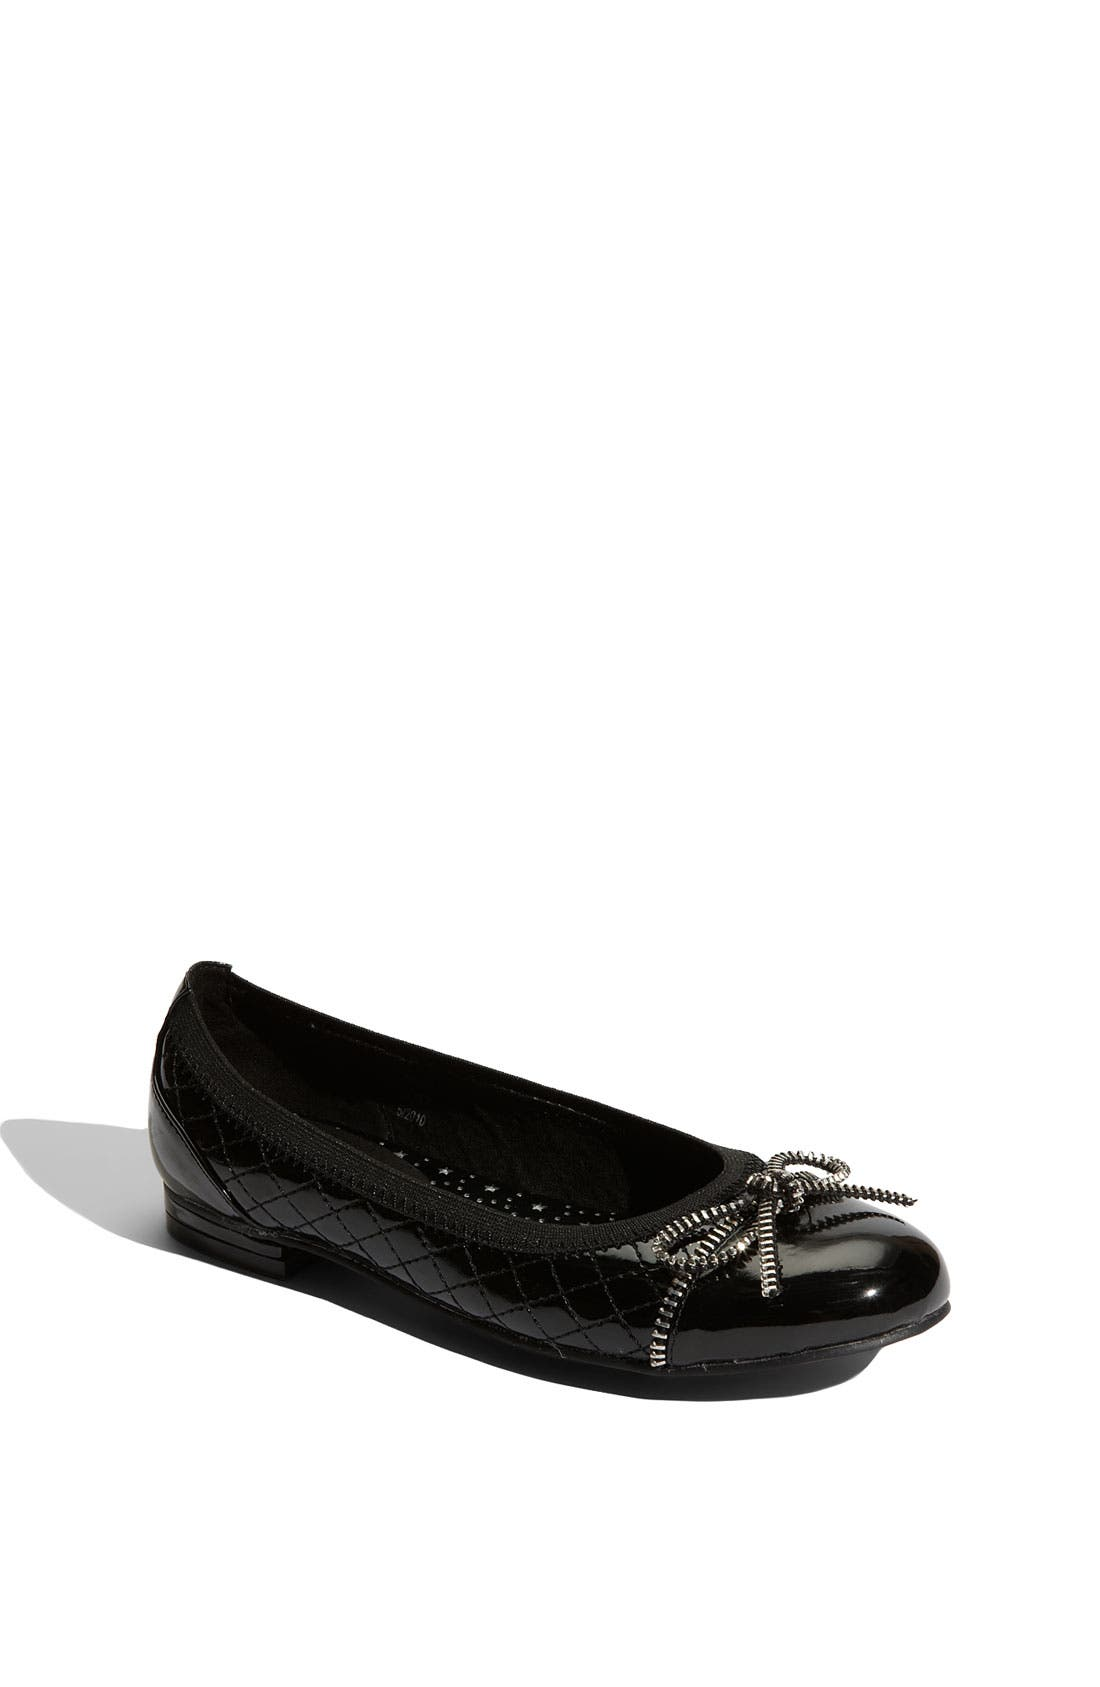 Alternate Image 1 Selected - KORS Michael Kors 'Fanny' Flat (Toddler, Little Kid & Big Kid)